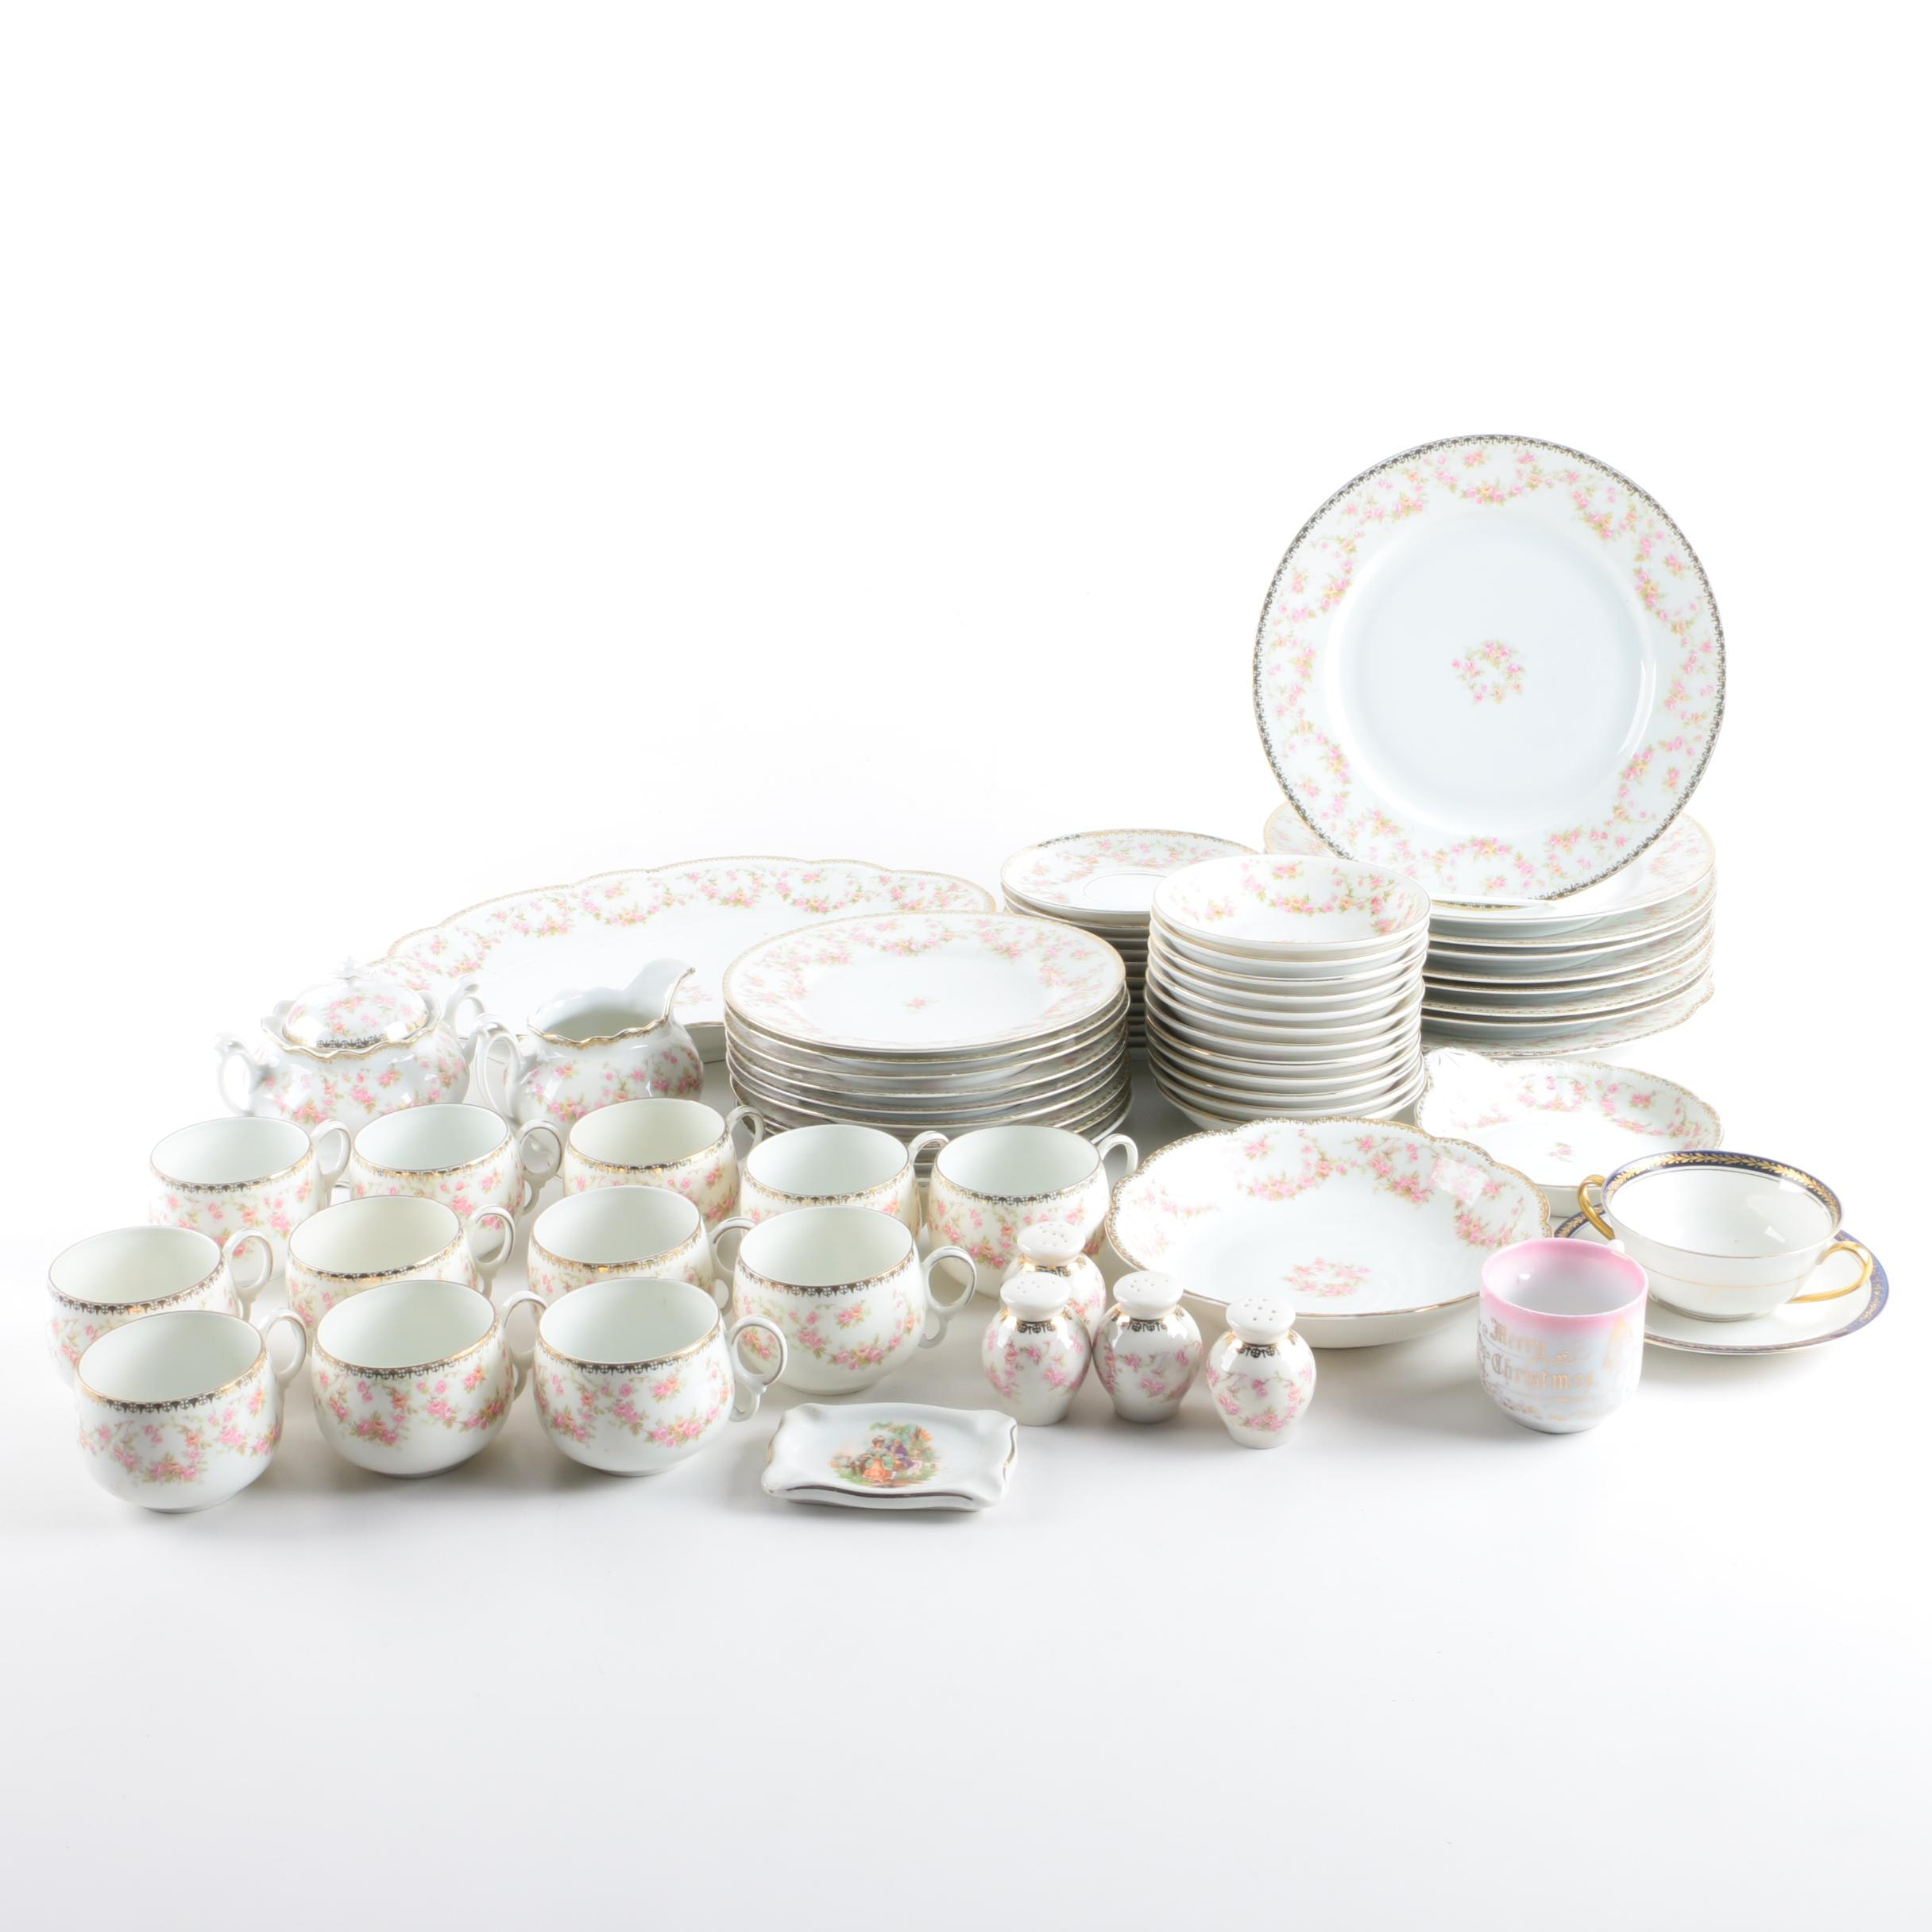 "Altrohlau China ""Bridal Rose"" Porcelain Tableware"